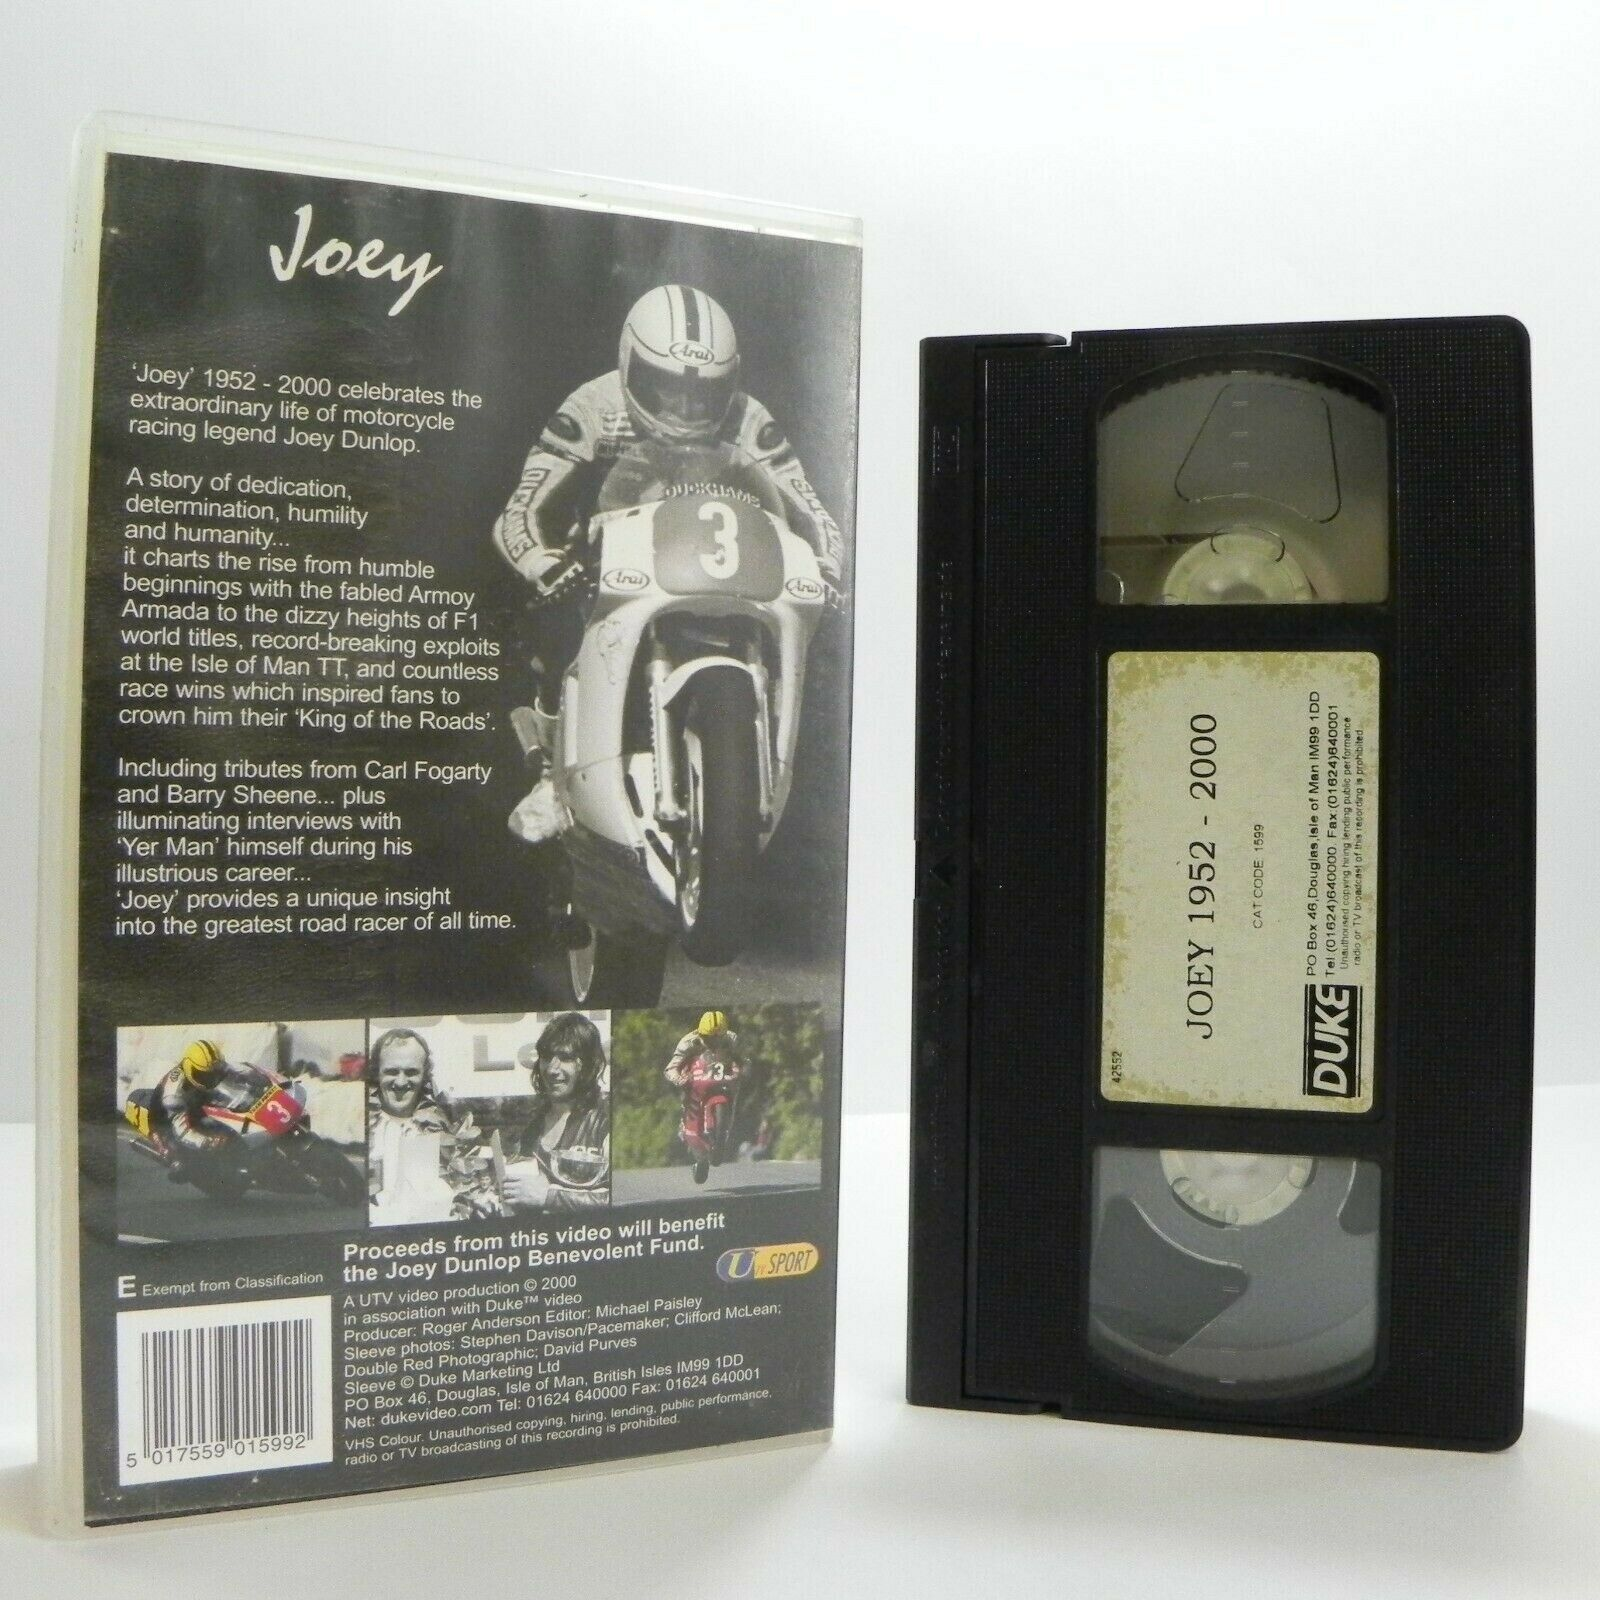 Documentary, F1, Joey, Legend, No, Pal, Racing, VHS